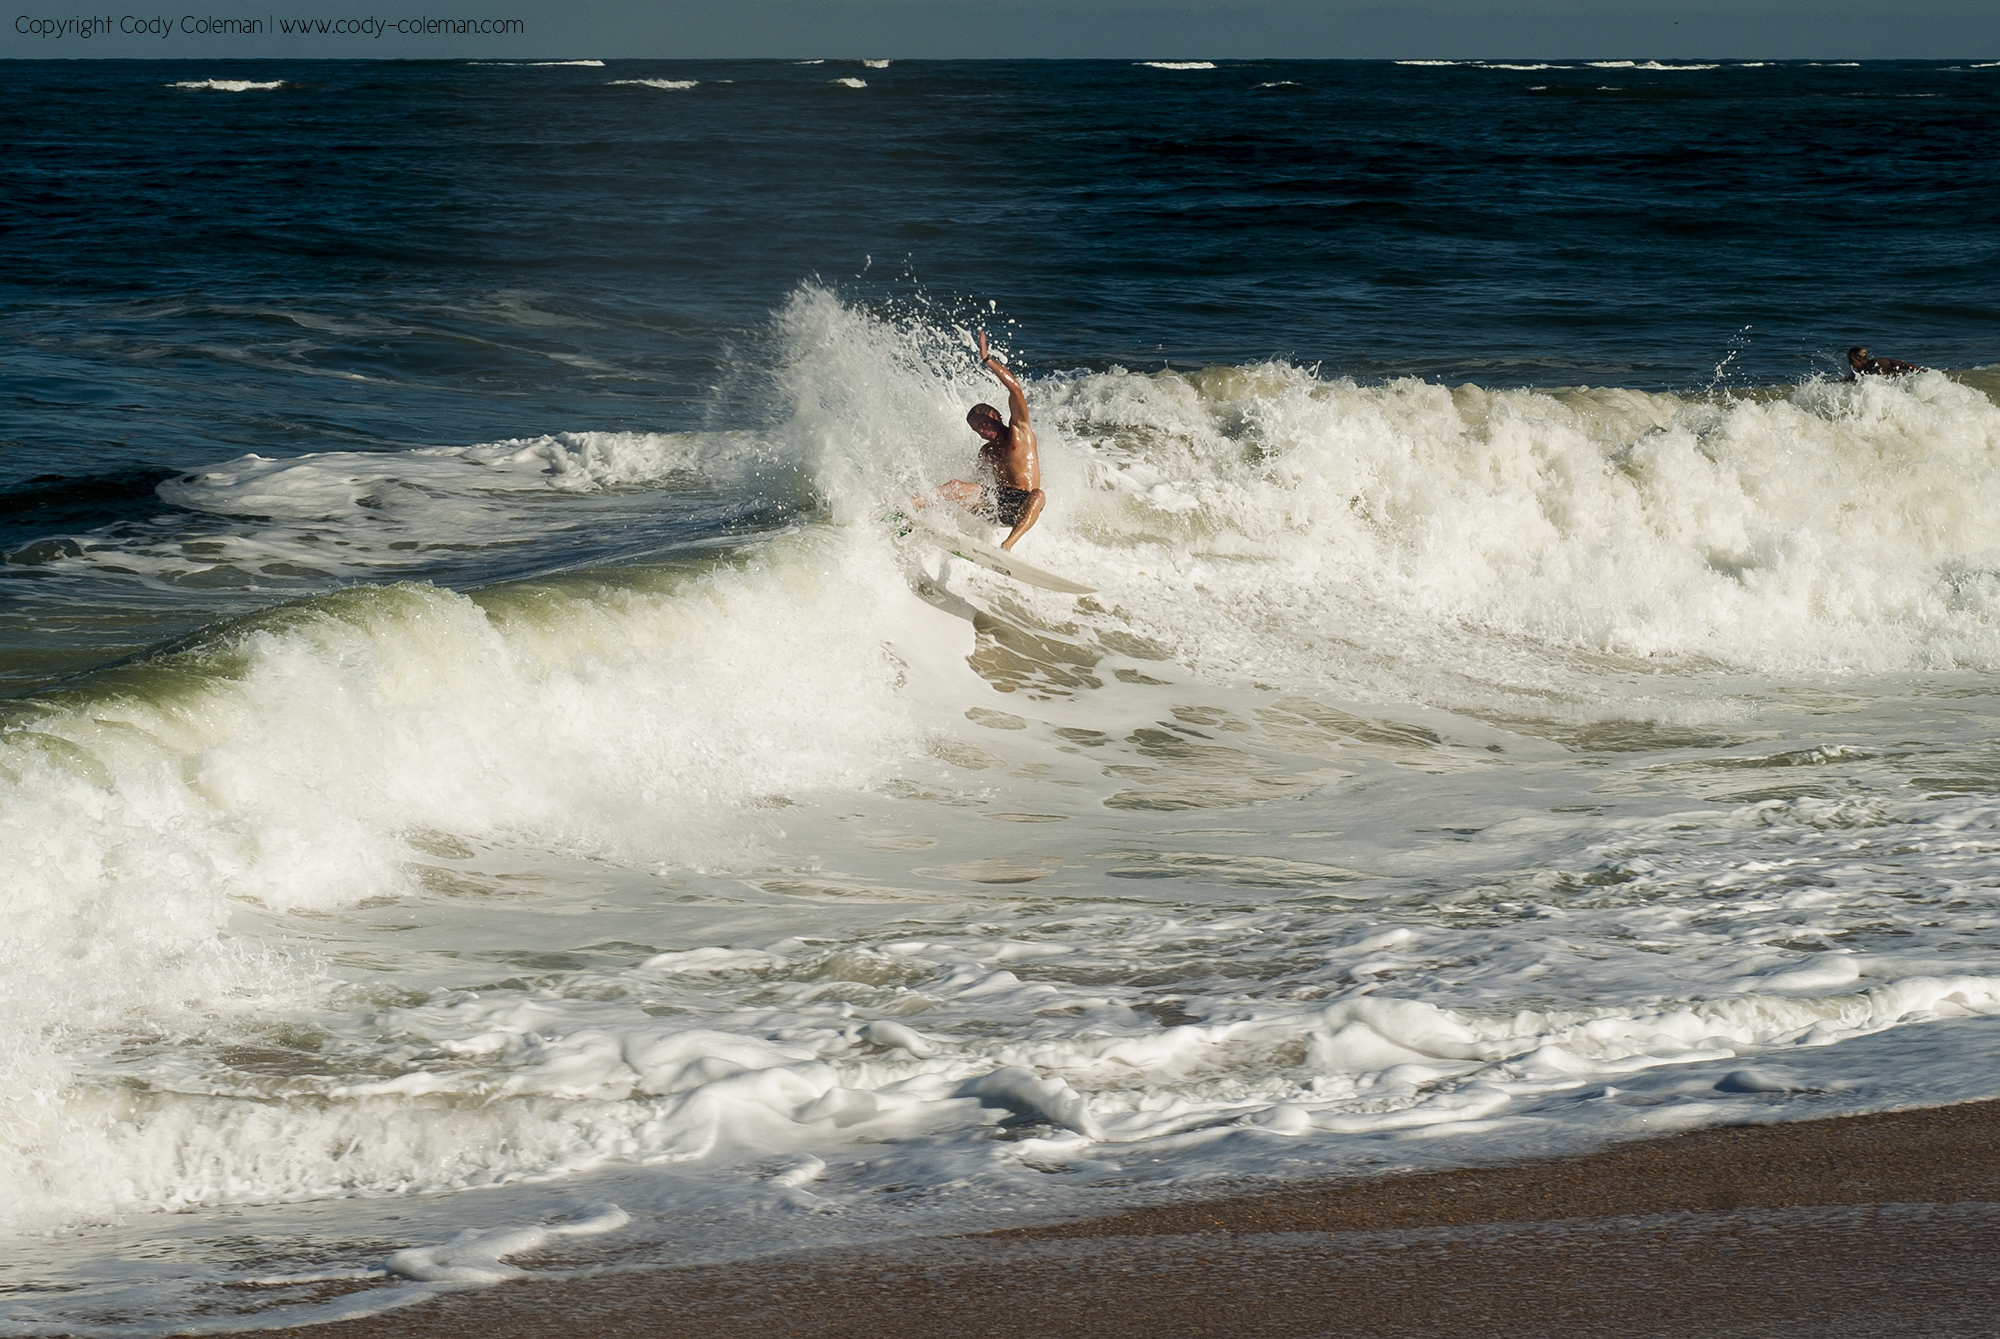 Andrew Gregorie testing the durability of his fins.